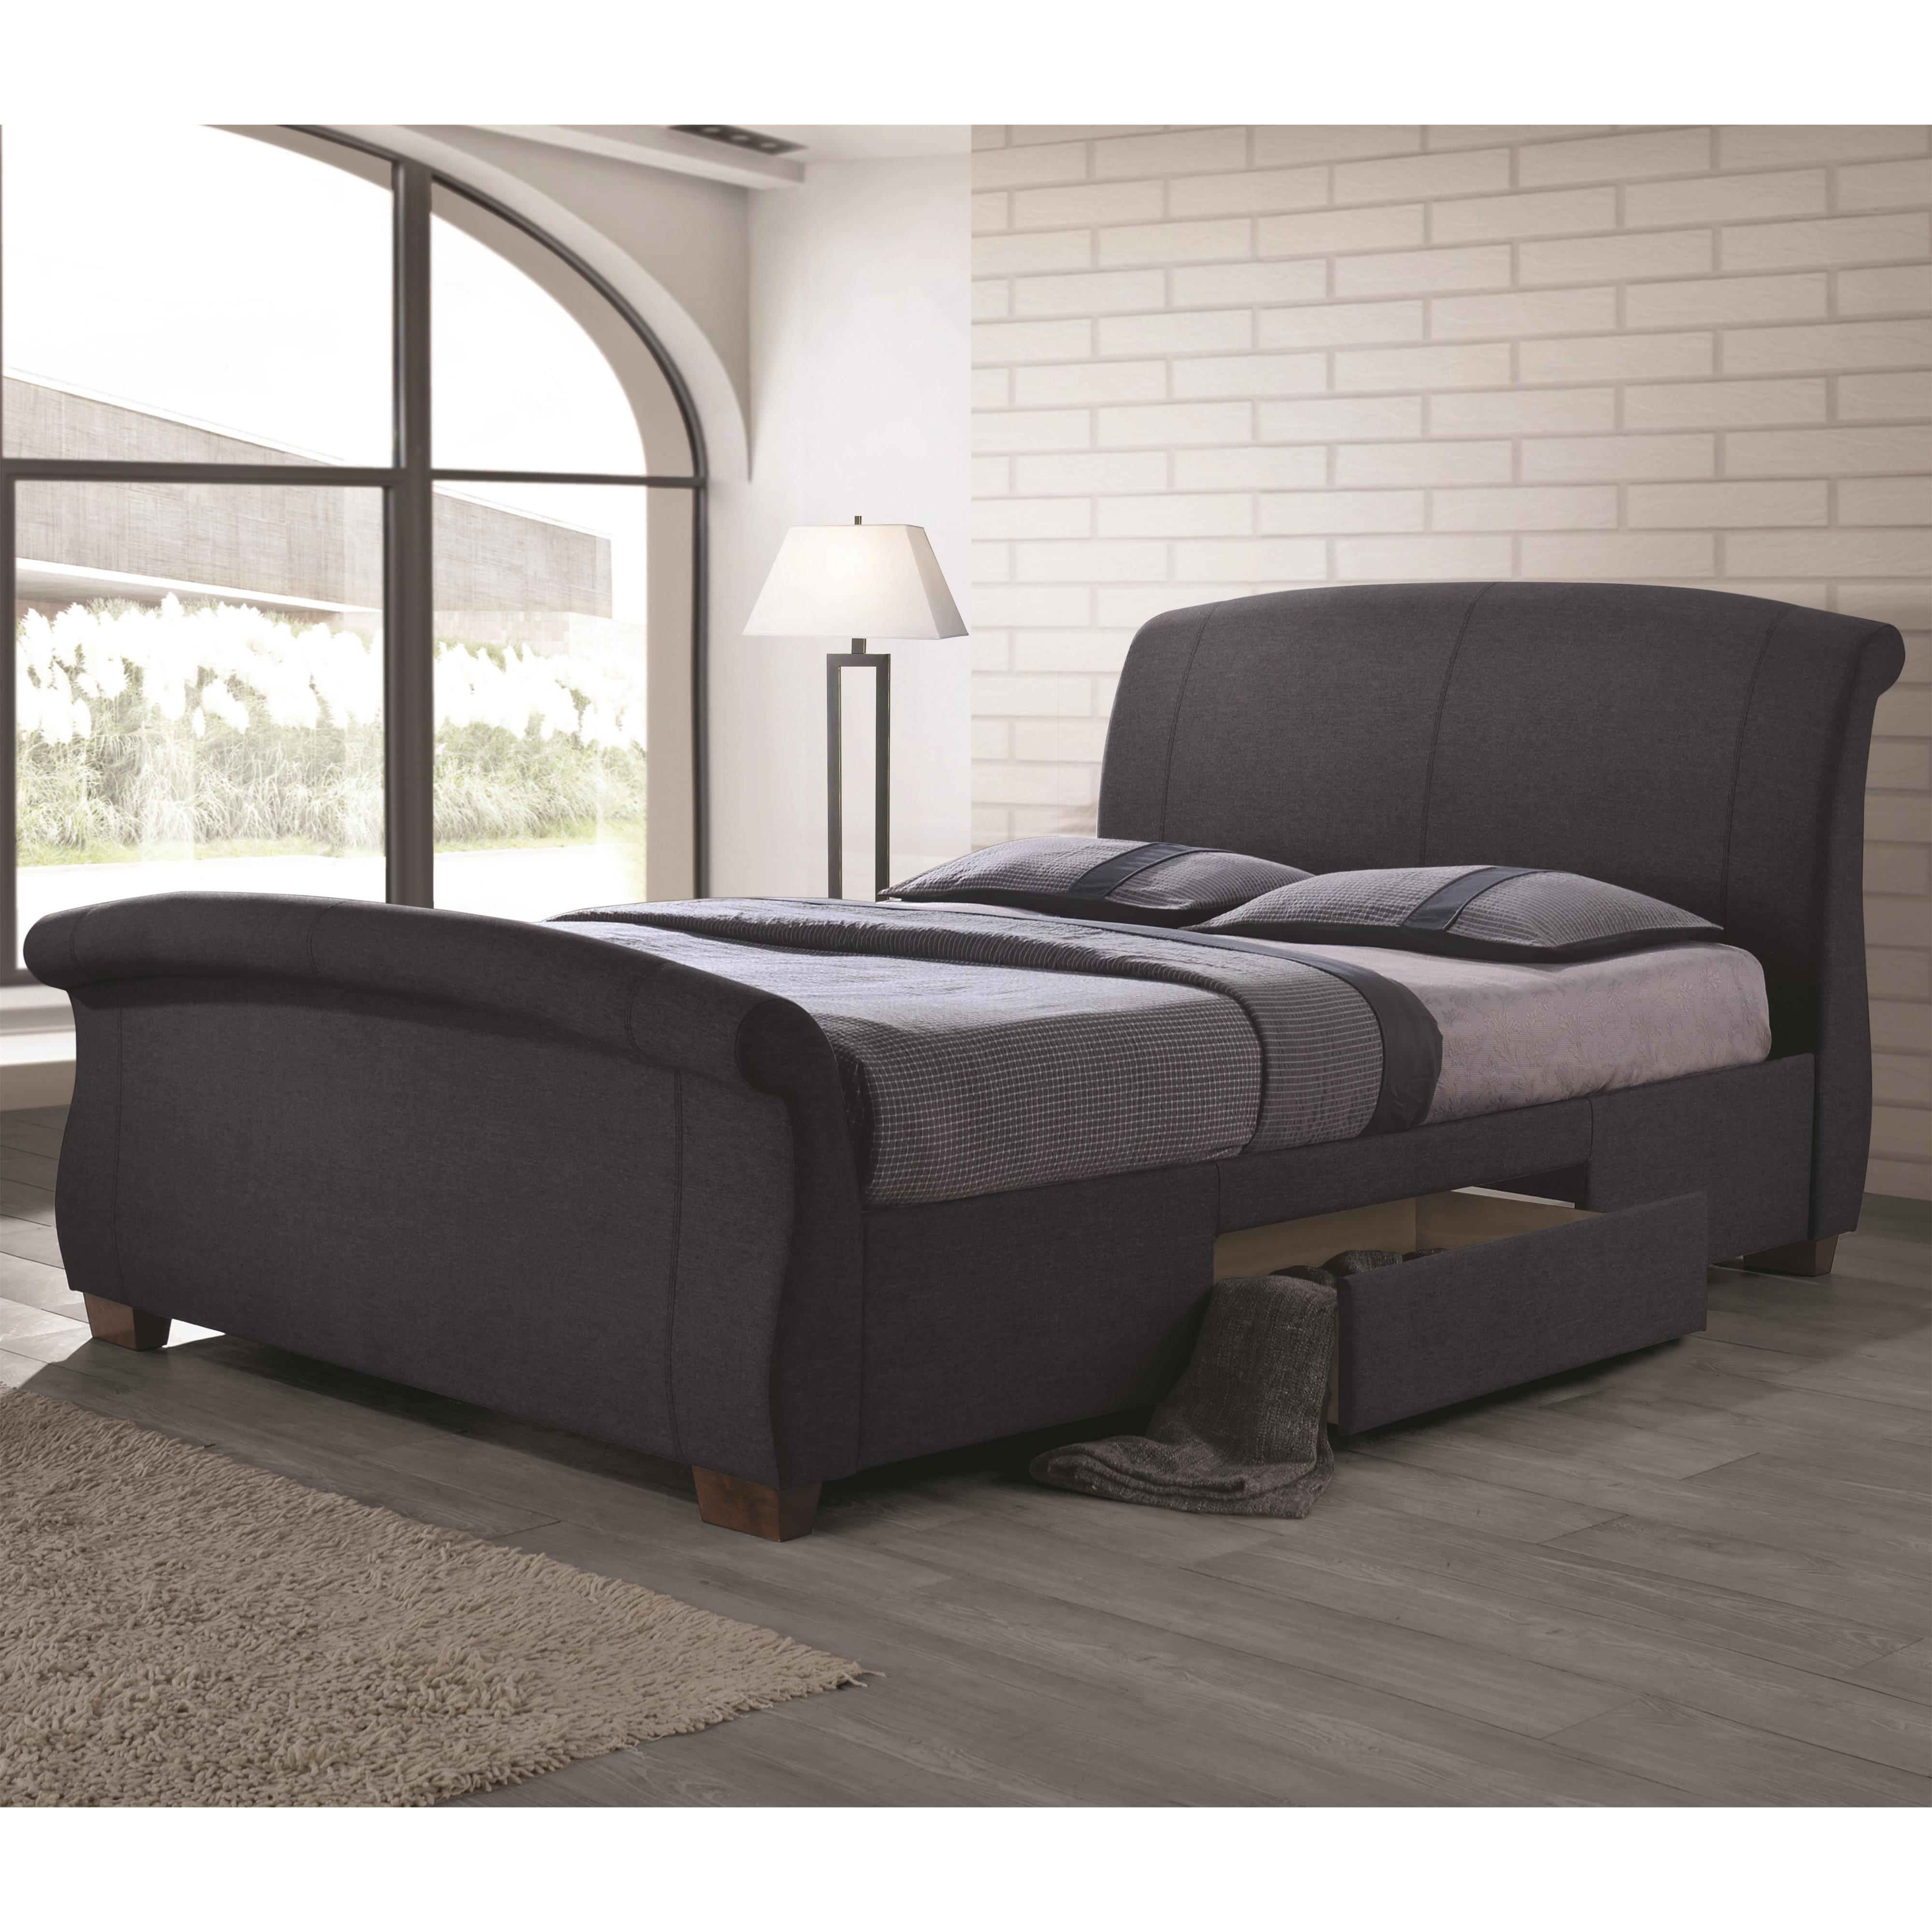 Coaster Bristol Fully Upholstered King Bed - Item Number: 300524KE